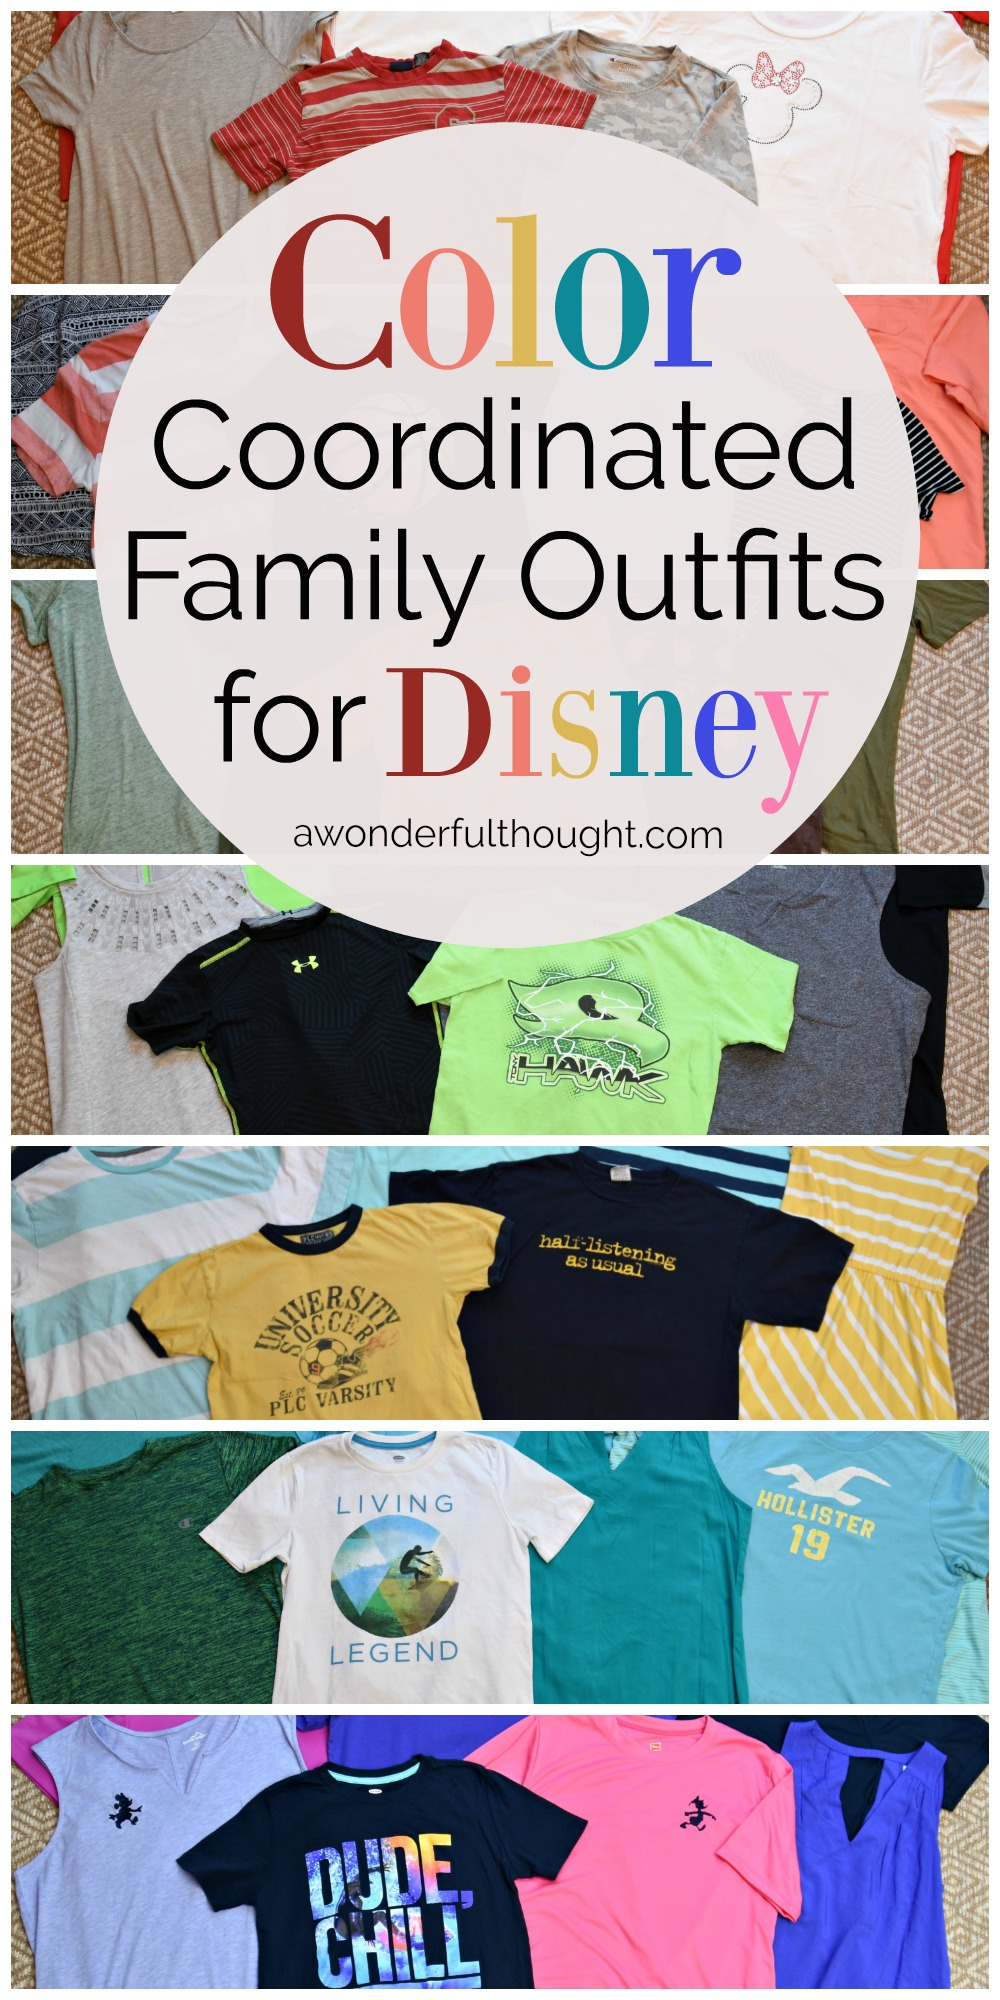 Color coordinated family outfits for Disney. Learn what to wear to Disney World to look fabulous! | awonderfulthought.com